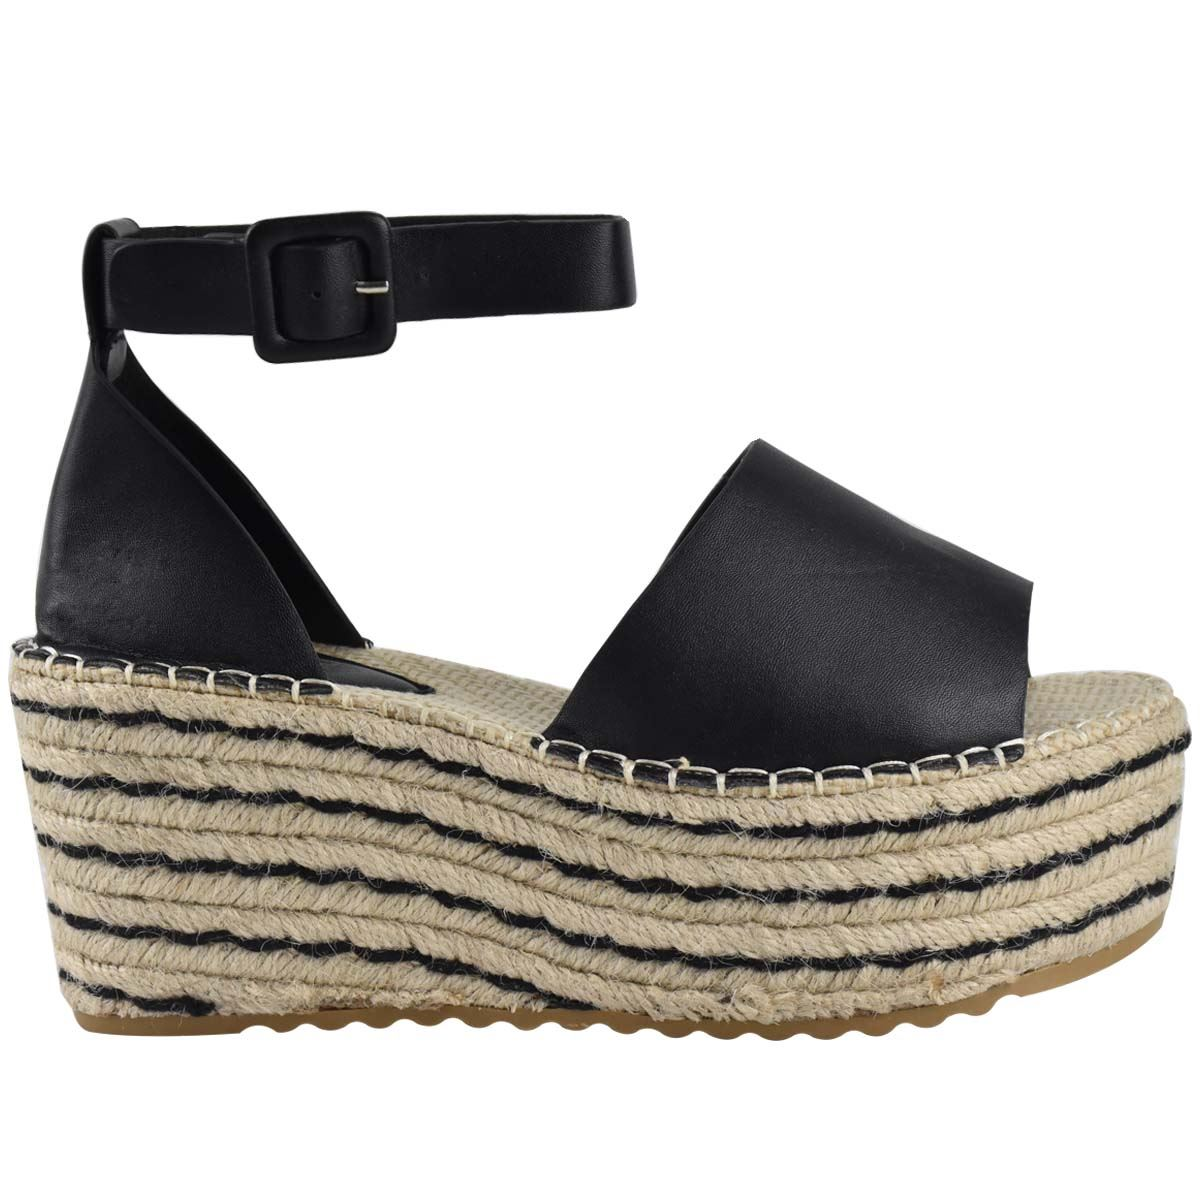 Womens-Flatform-Platform-High-Wedge-Black-Tan-Faux-Leather-Summer-Sandals-Size thumbnail 4